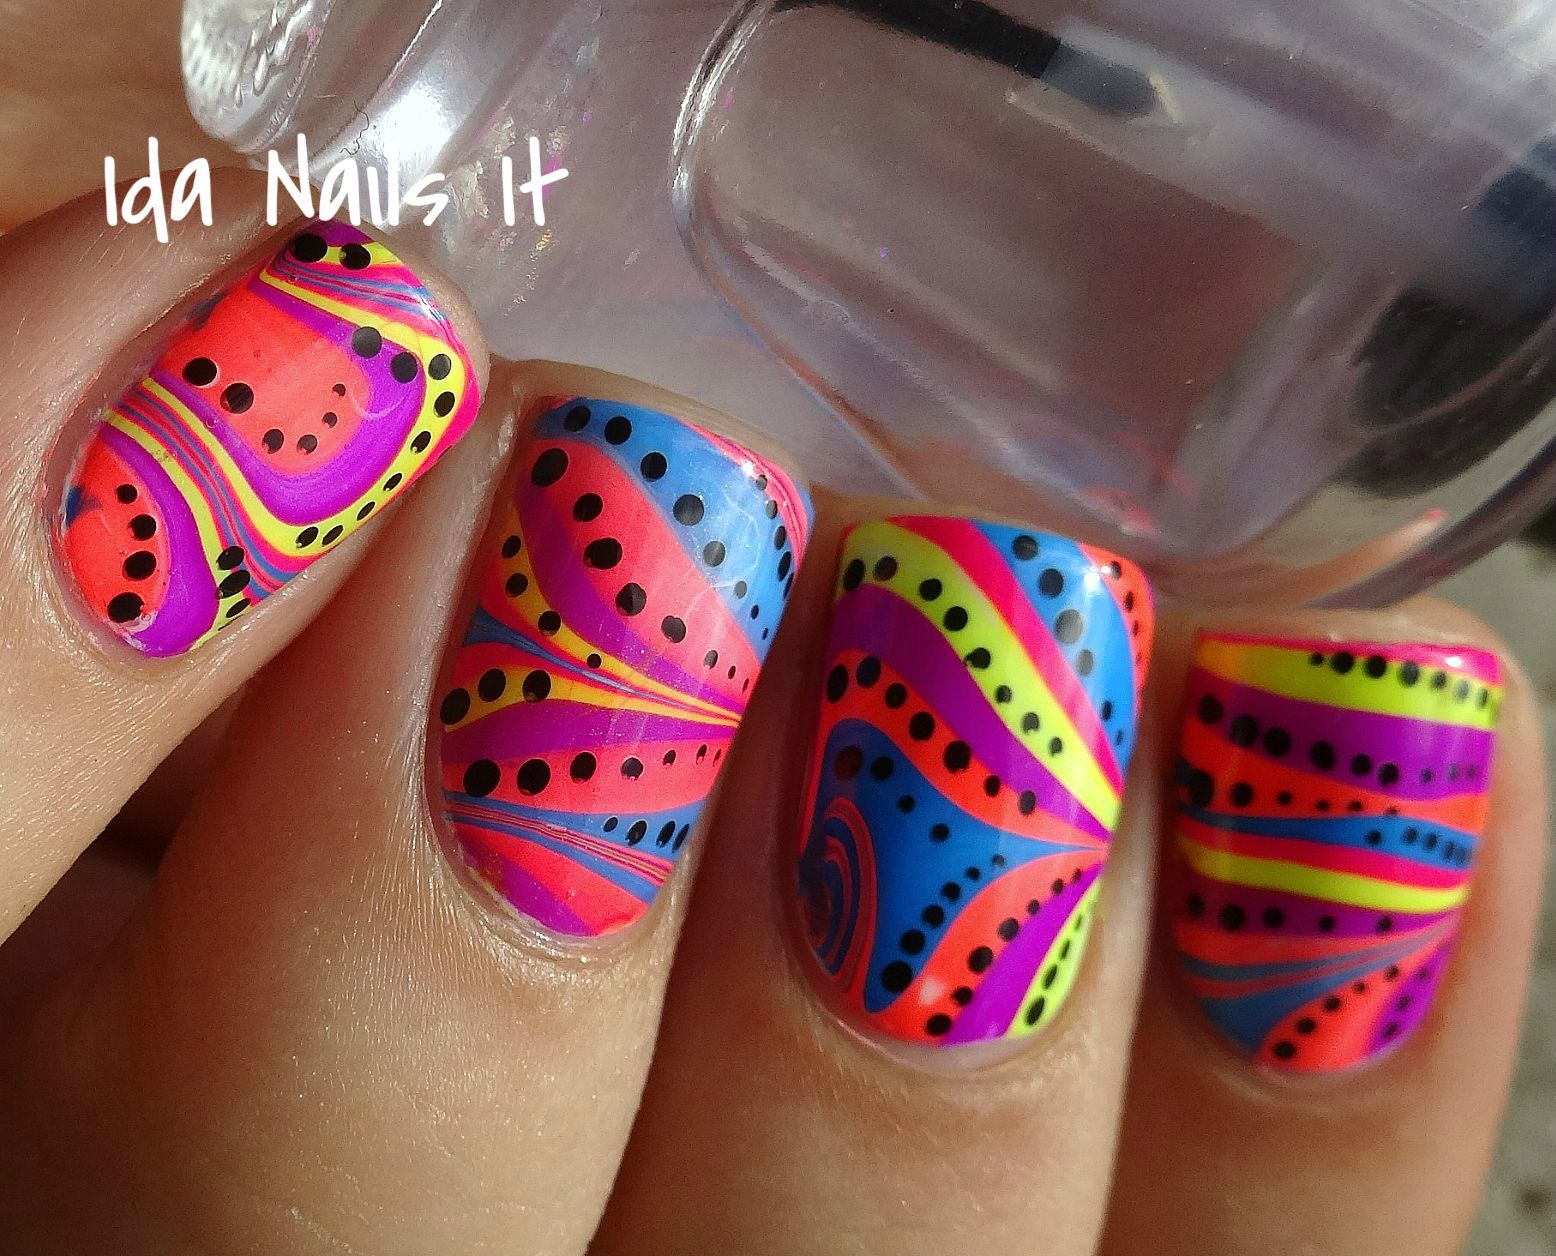 Guest Post: Ida Nails It at Lucy's Stash!